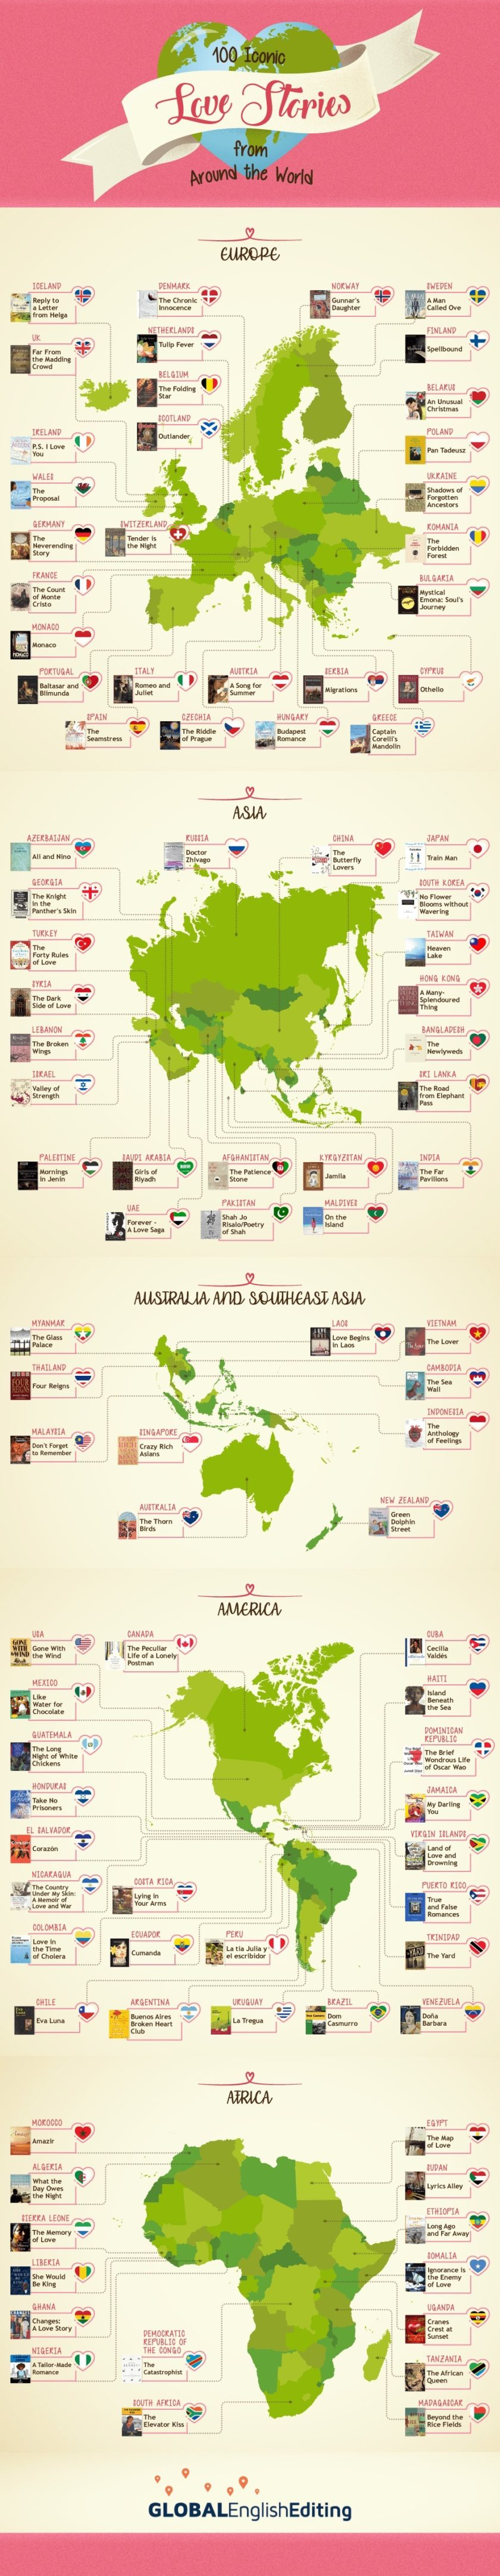 100 iconic books about love from around the world #infographic